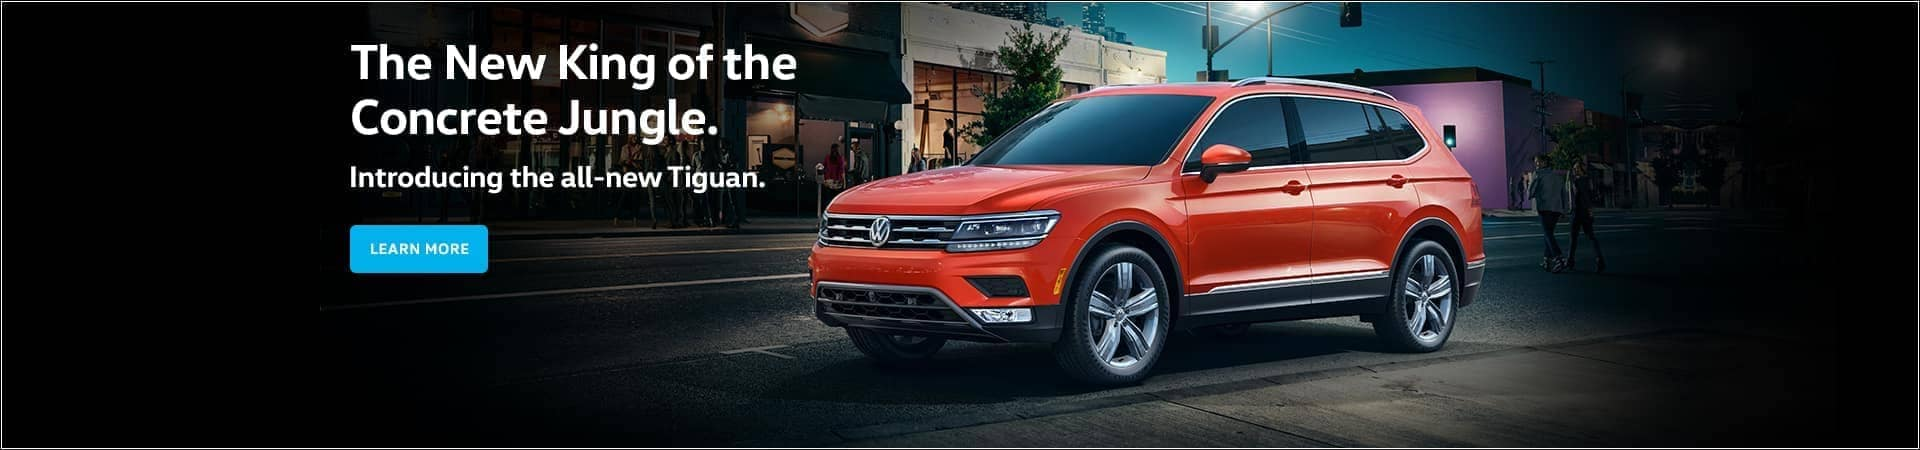 Gene Messer Volkswagen | Lubbock VW Dealership Near Me